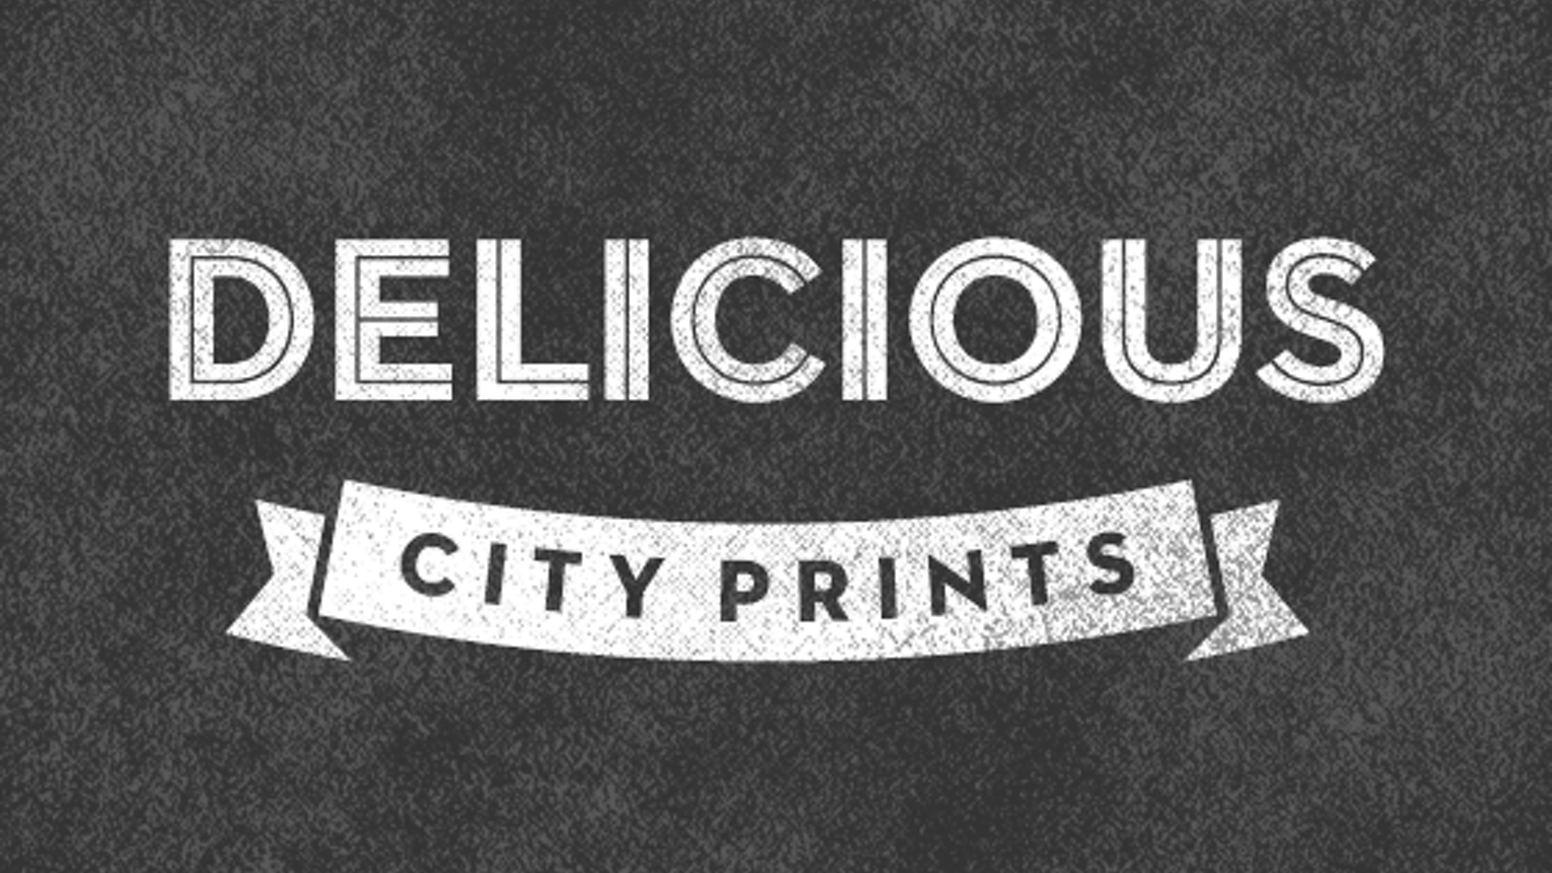 A typographic poster series that celebrates the delicious foods from different cities.